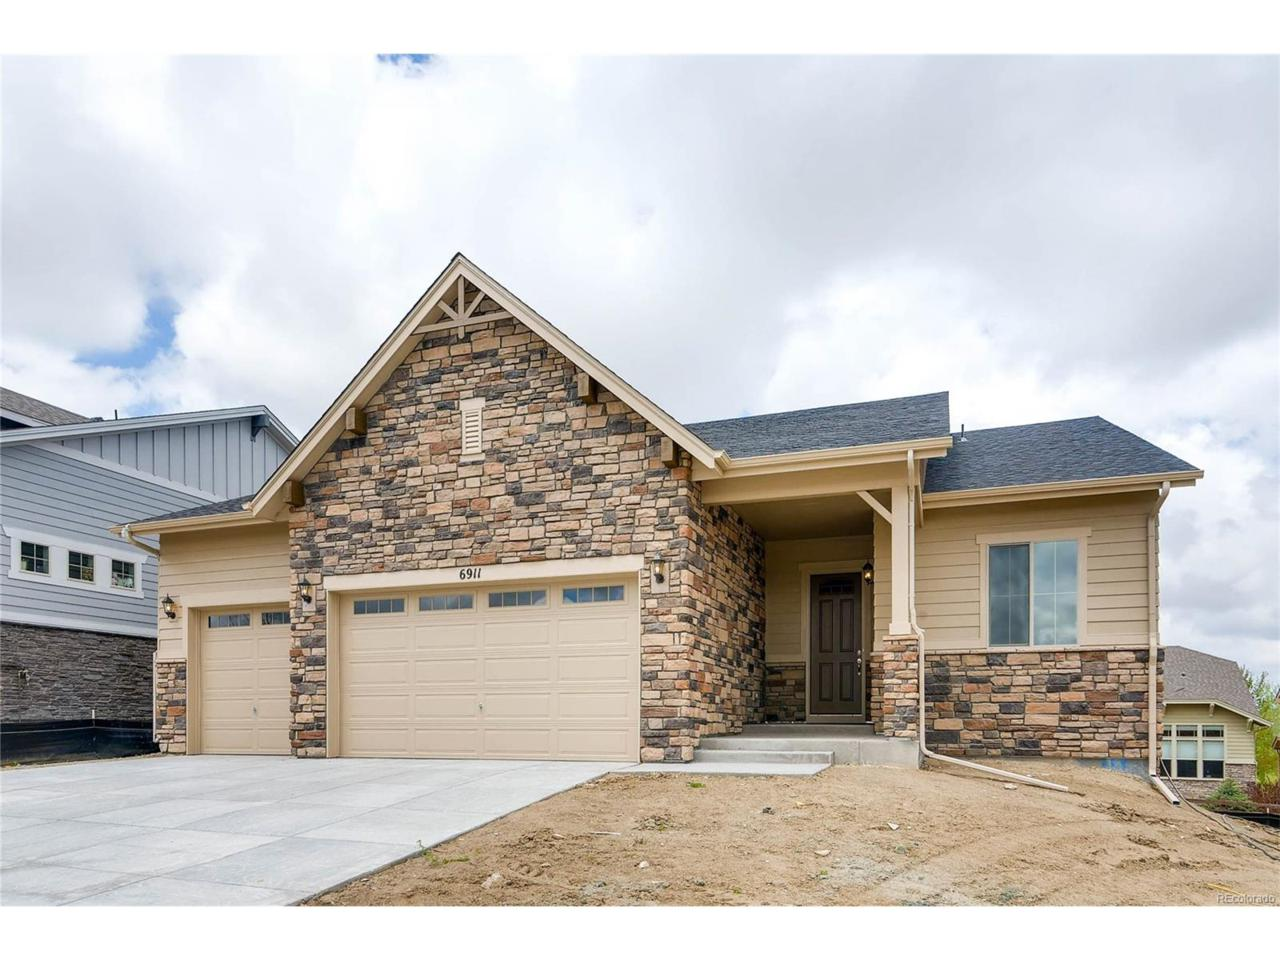 6911 S Robertsdale Court, Aurora, CO 80016 (MLS #9881793) :: 8z Real Estate